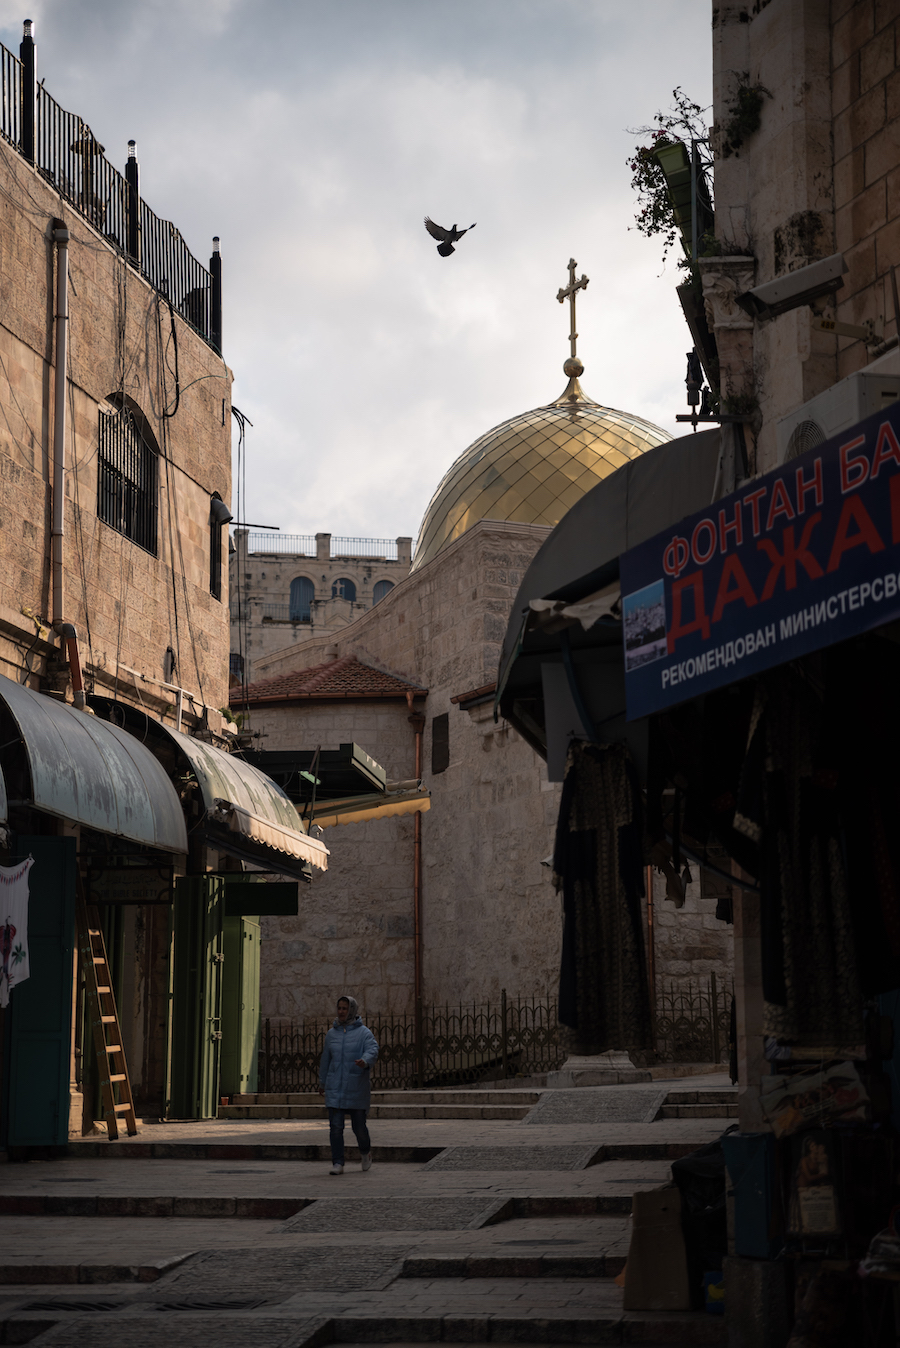 Jerusalem old town, Israel Travel Photography by Ben Holbrook from DriftwoodJournals.com-1965Jerusalem old town, Israel Travel Photography by Ben Holbrook from DriftwoodJournals.com-1965